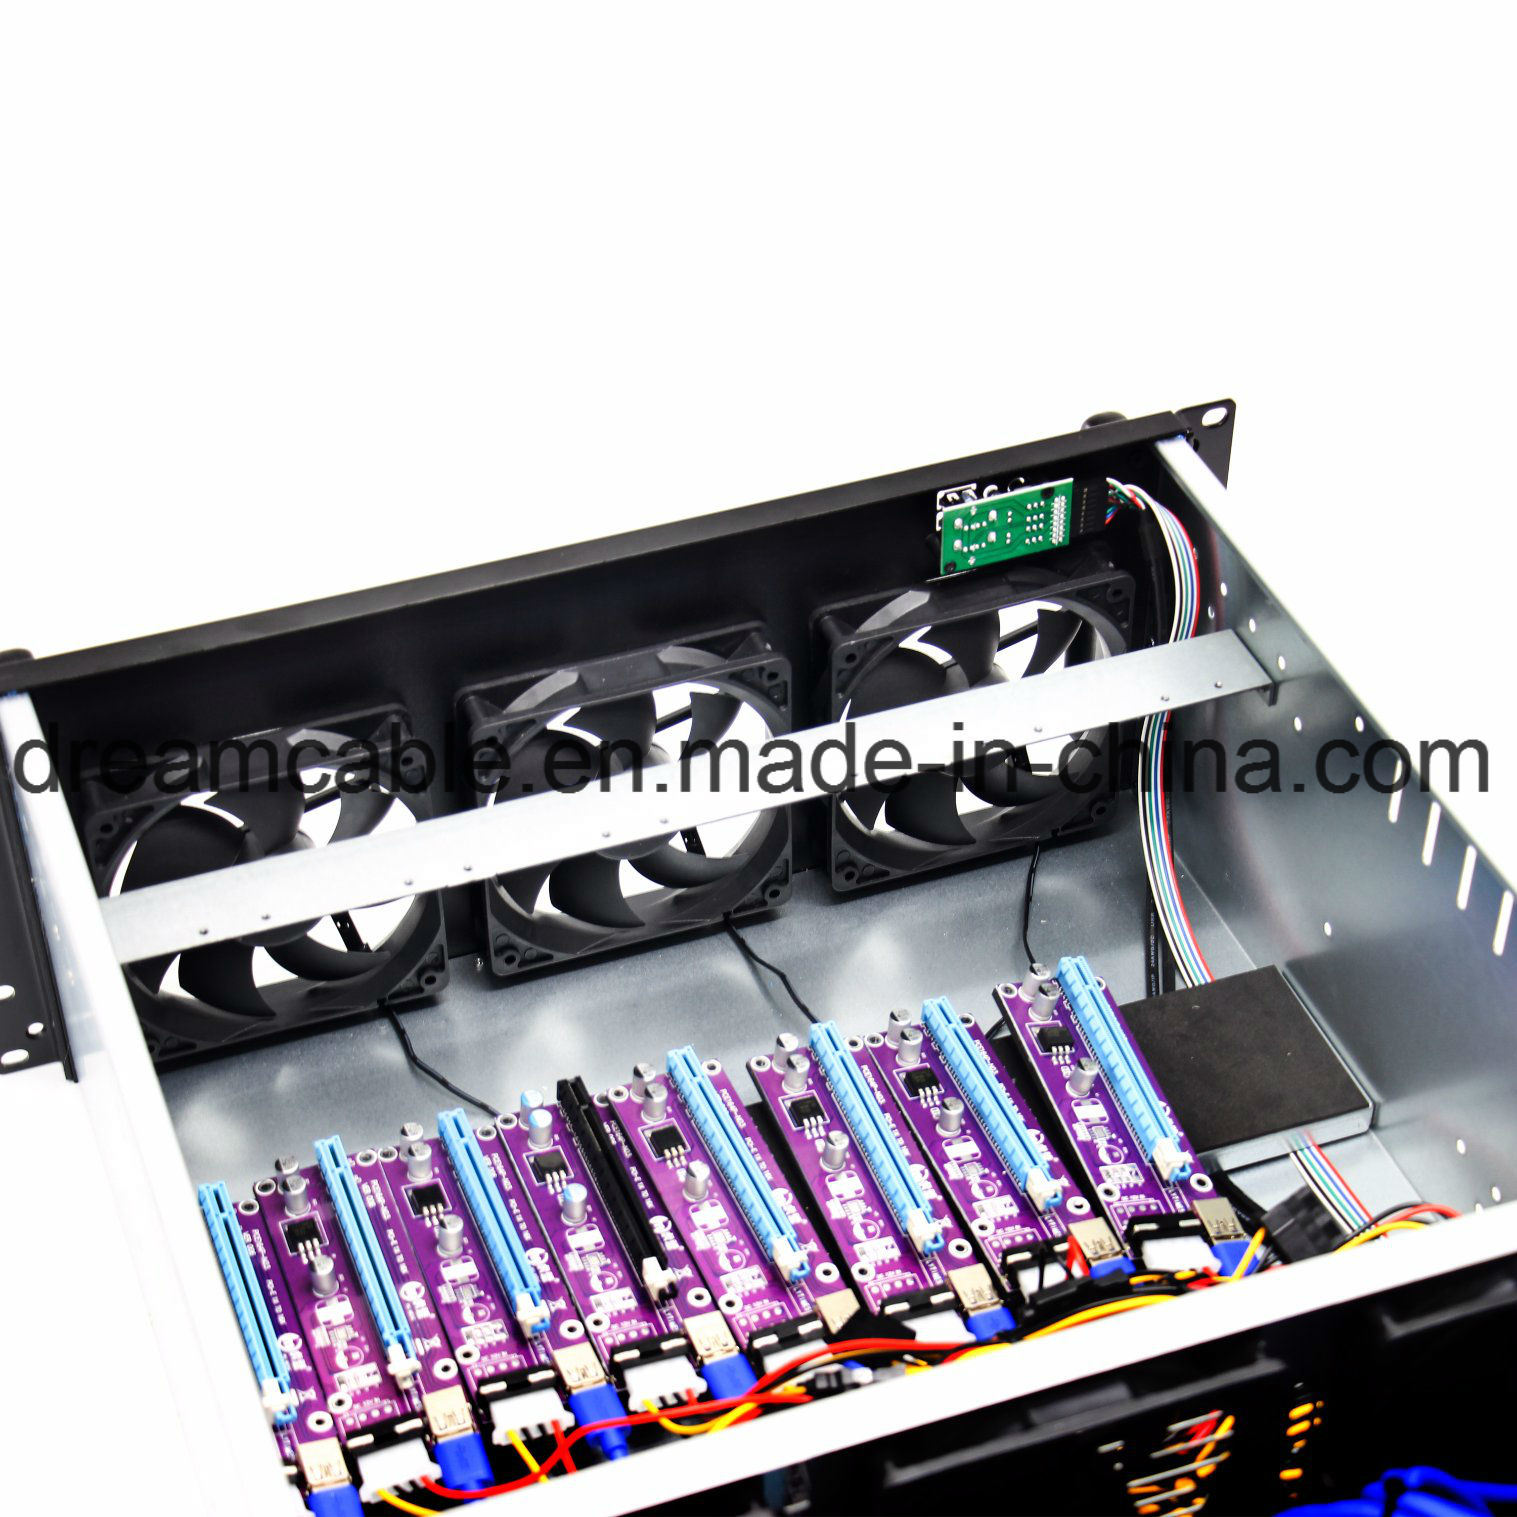 Aio Miner [hot item] high roi humeng cheap 8 gpu 1650w psu 6 fans etherum miner case  for eth/etc